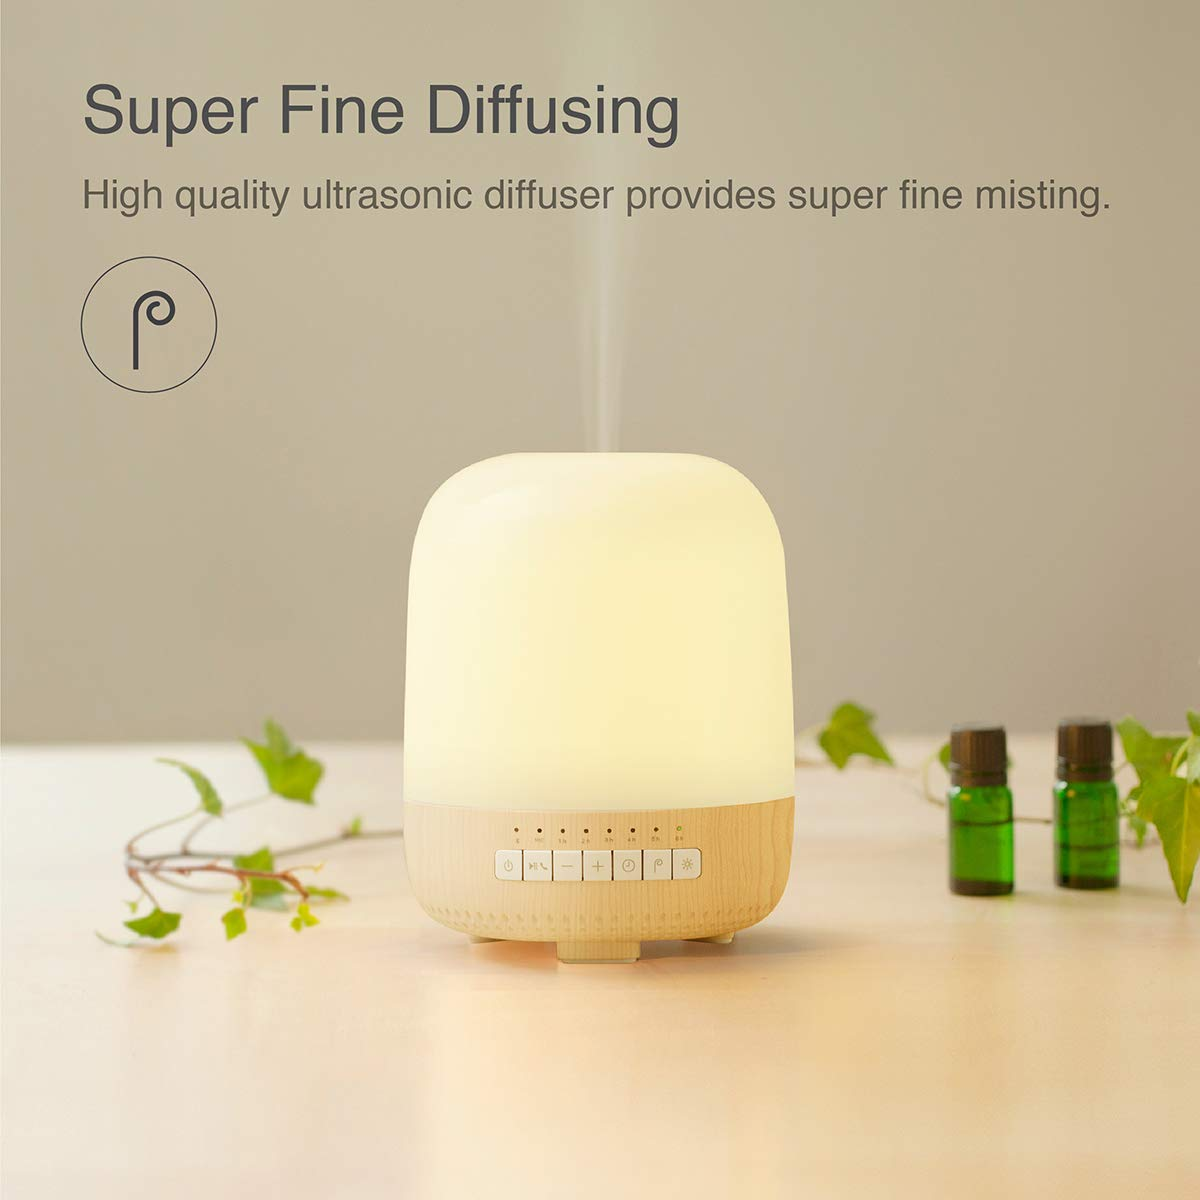 emoi 3-in-1 Aromatherapy Diffuser, Bluetooth Speaker and Multiple Colours Lamp (200ml) by emoi (Image #5)